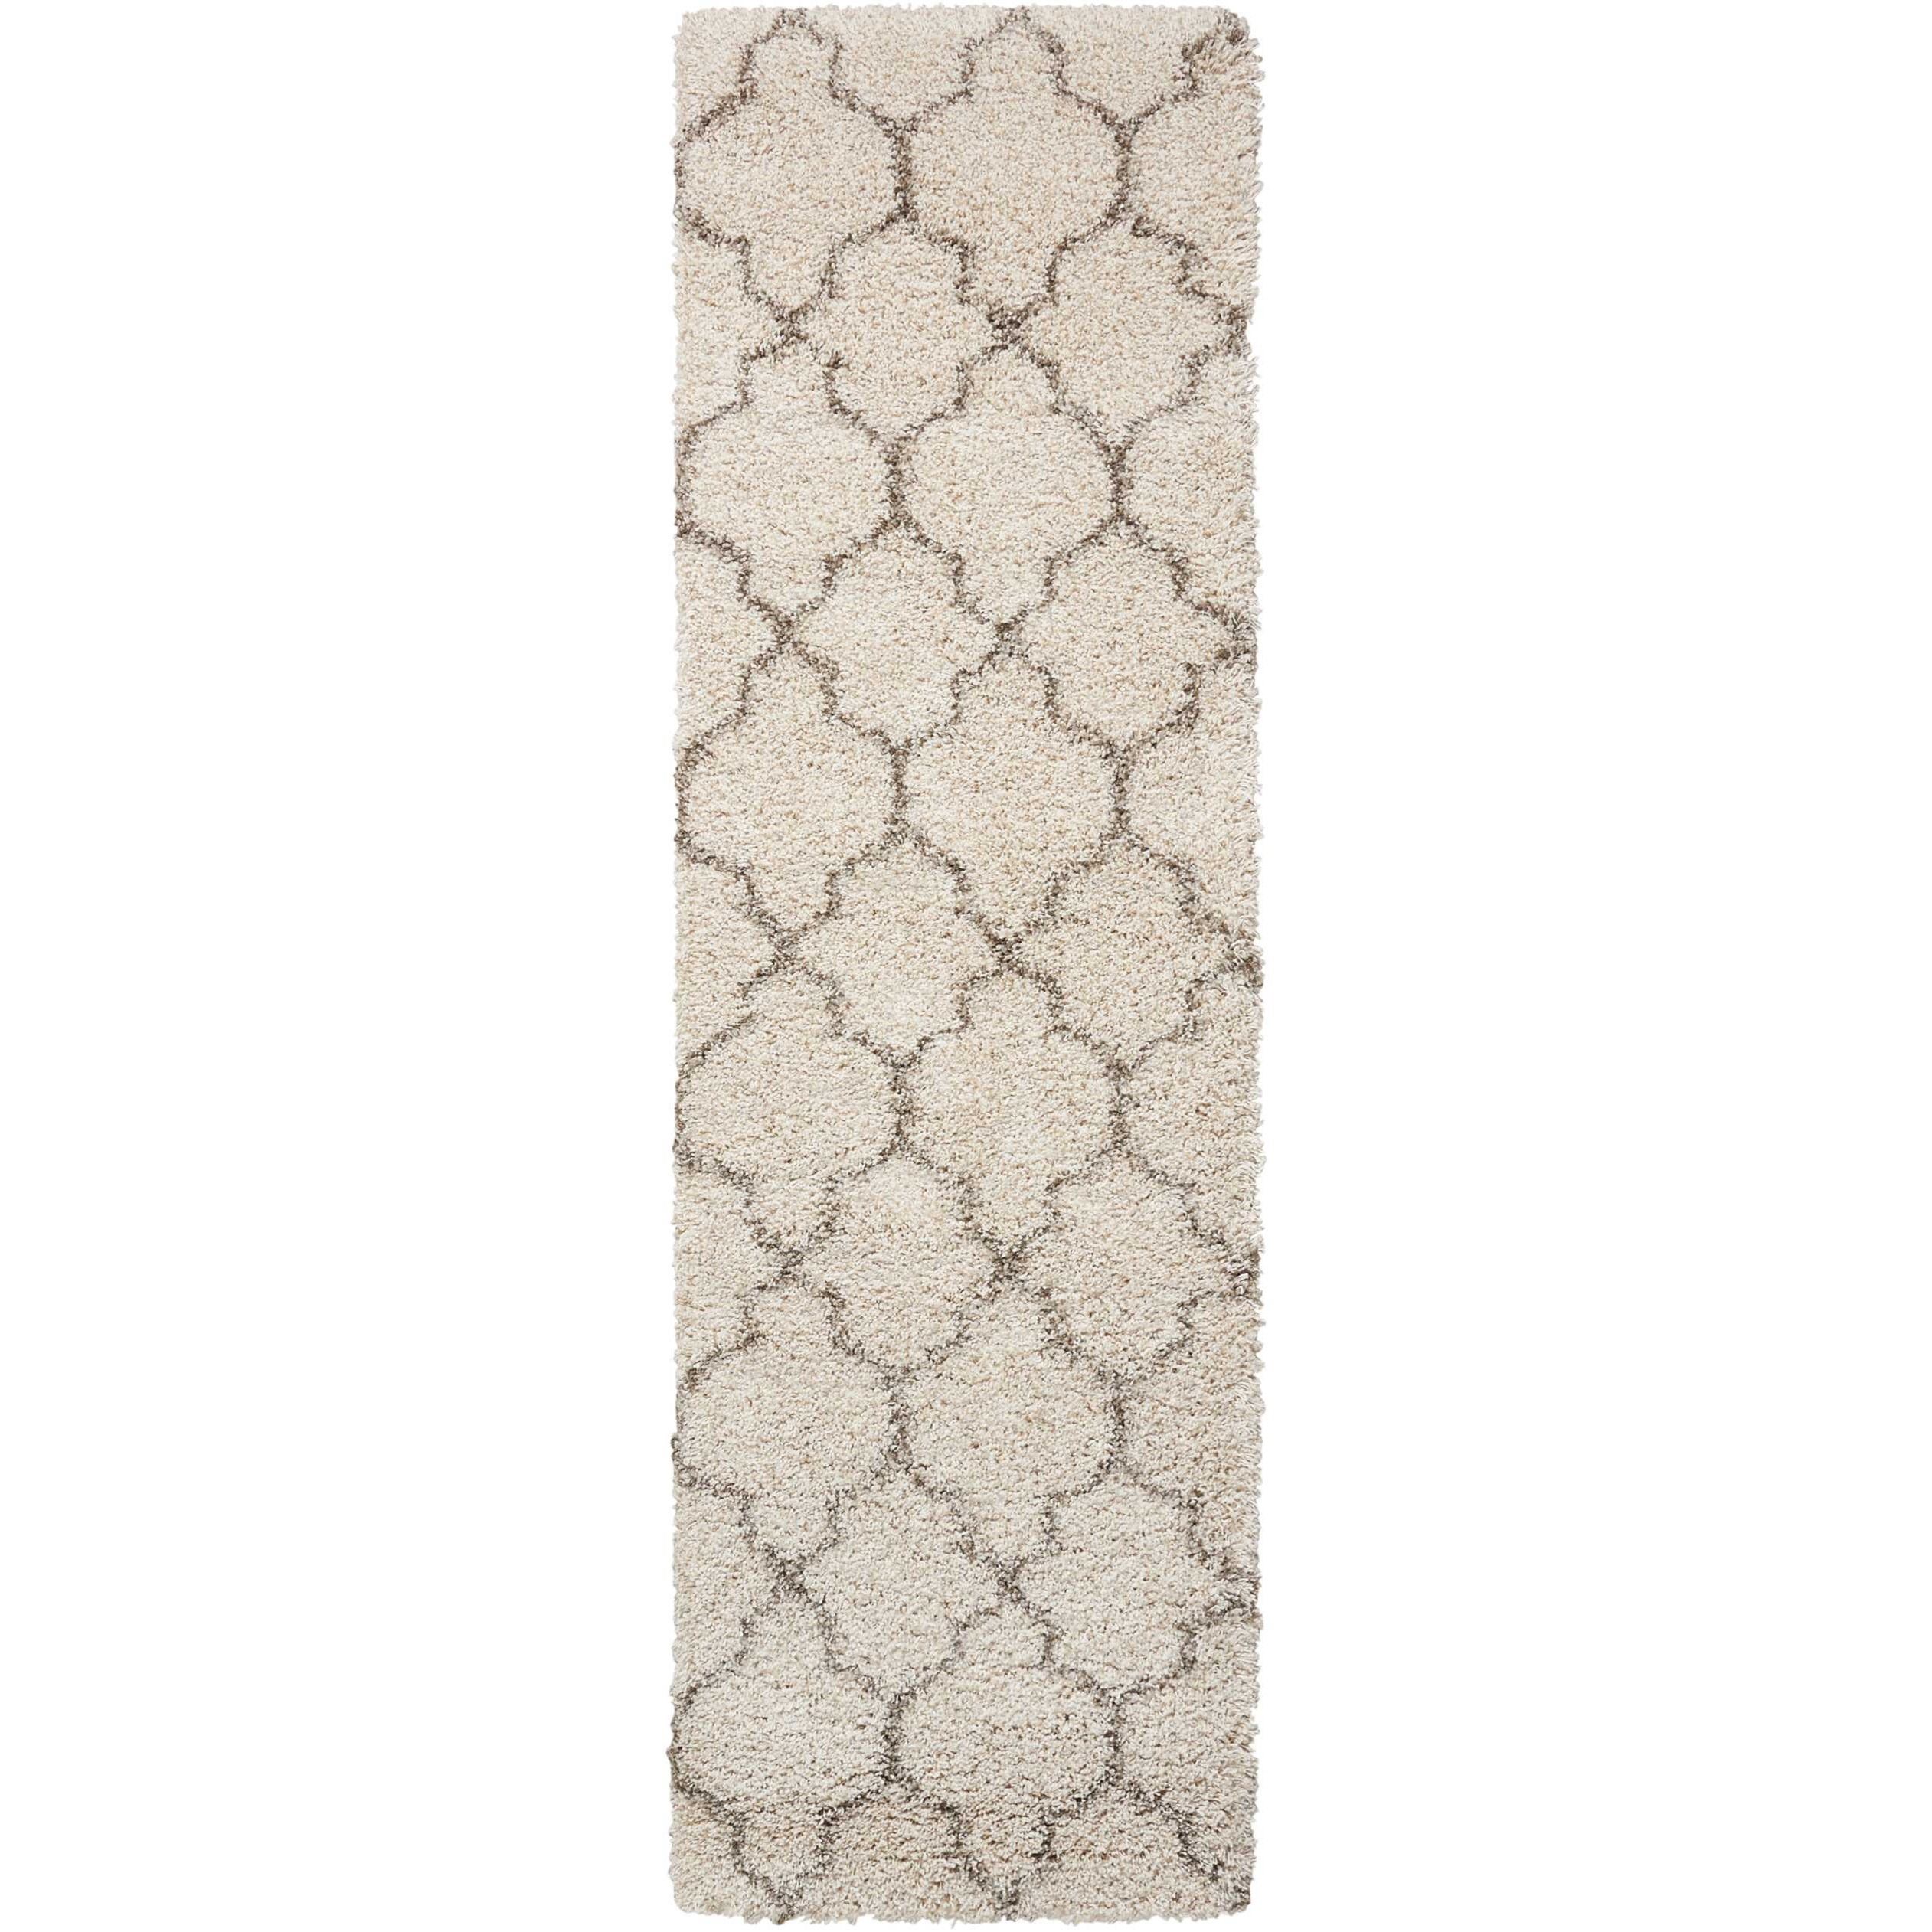 "Amore 2'2"" x 7'6"" Cream Runner Rug by Nourison at Sprintz Furniture"